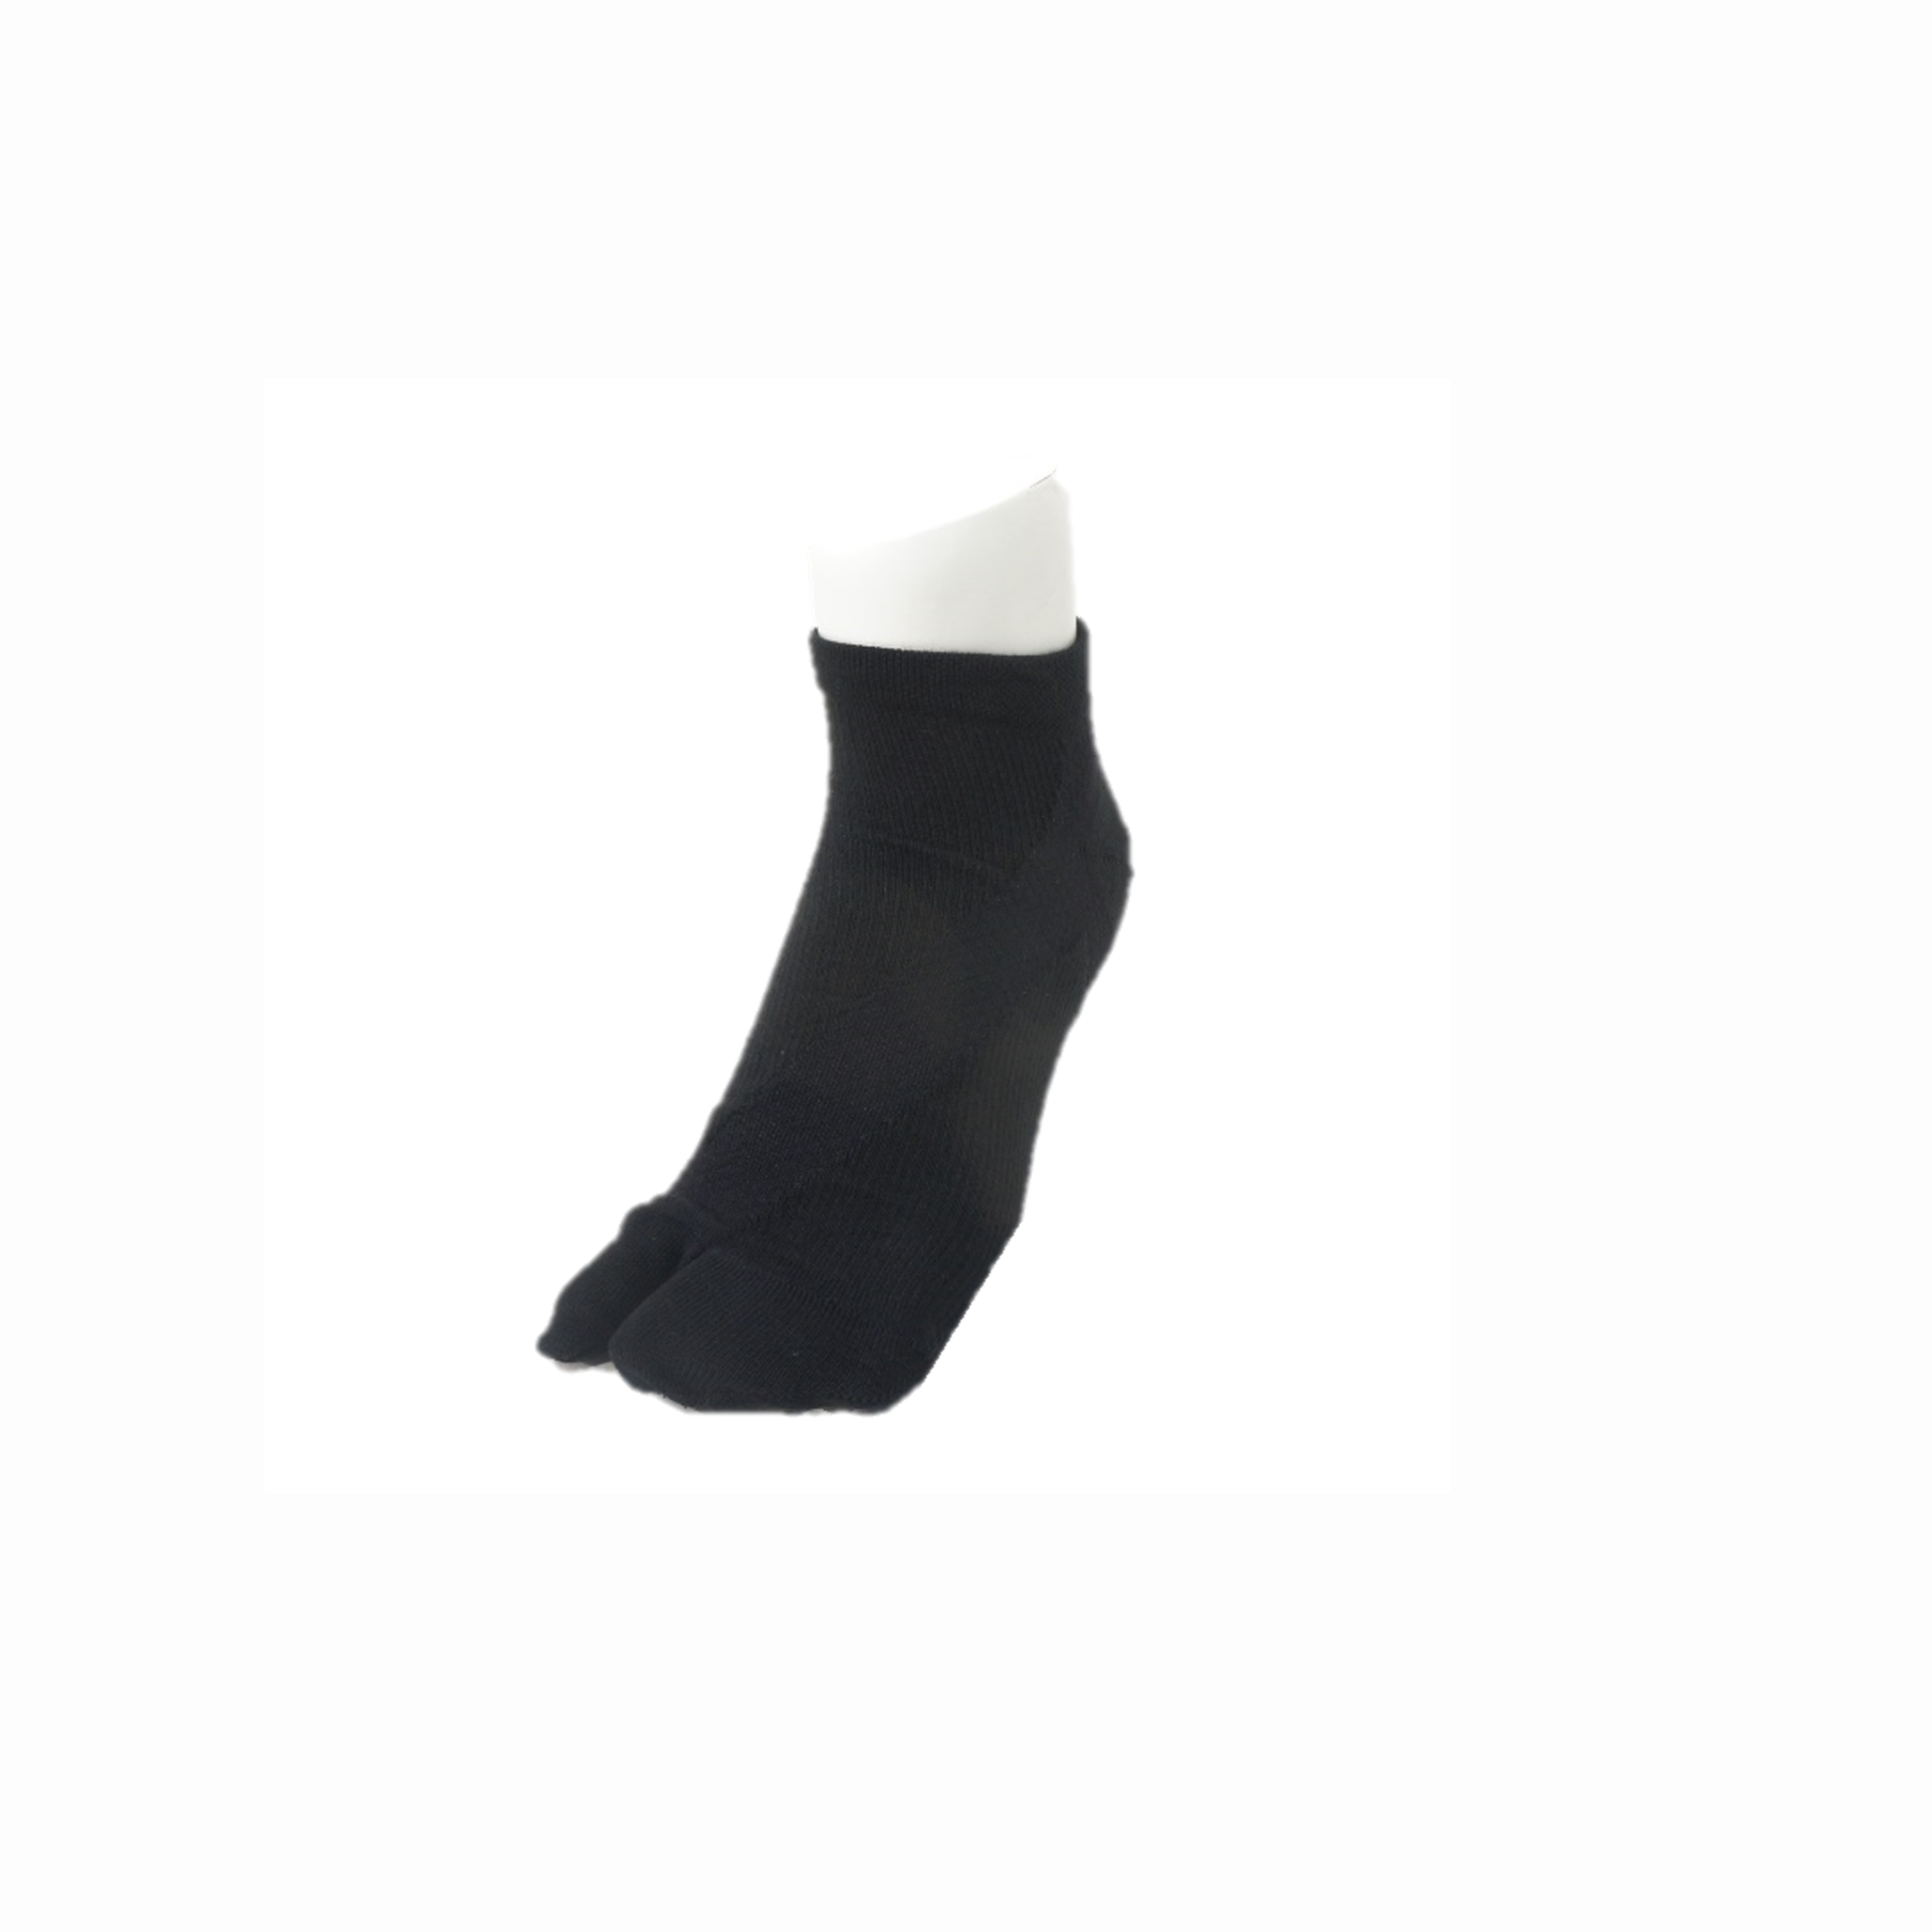 High quality ankle socks organic cotton to improve stability